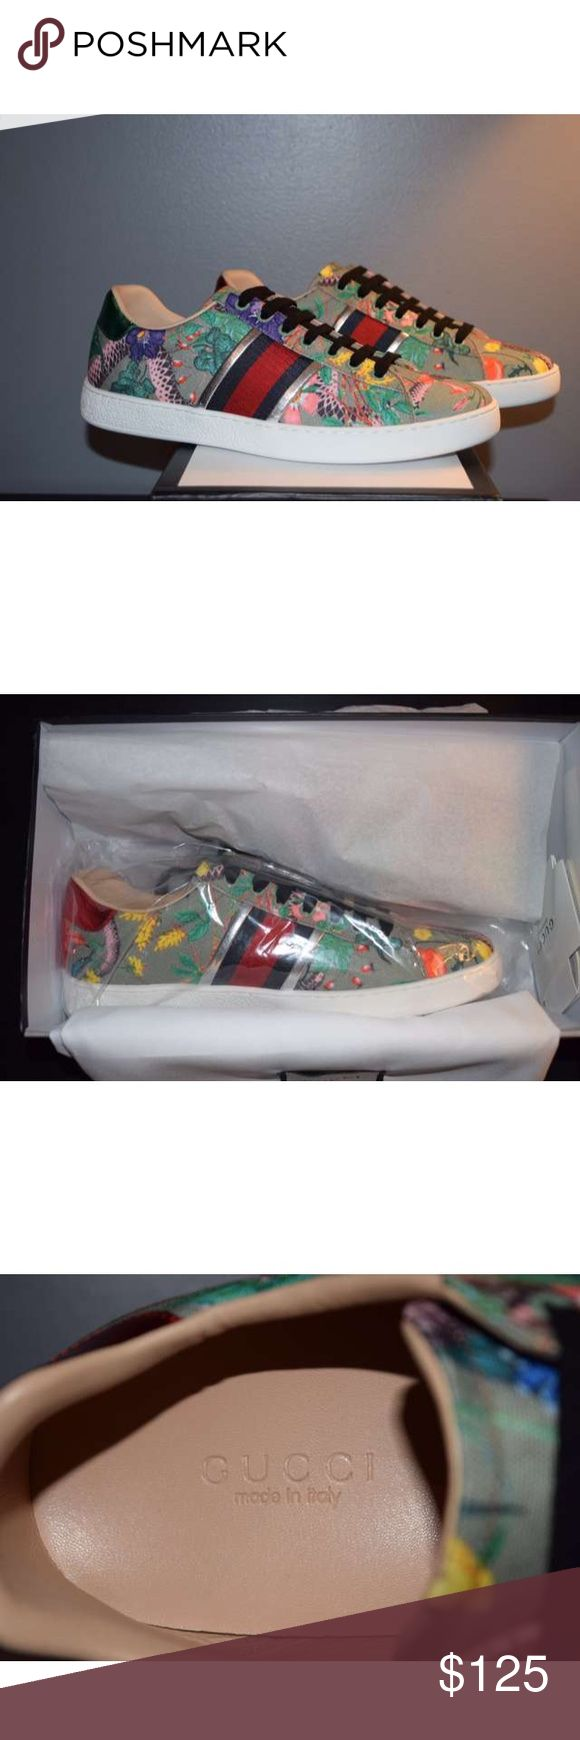 Gucci Tika  Ace Sneakers i Have sizes 6-13 Available!  Please Text me at (219) 213-6251 to see if i still have your size in stock or for more pictures Before purchase ! 100% authentic  comes with Box , Dustbags , Receipts And Carebooks price is Negotiable! Serious Inquires only! Gucci Shoes Sneakers